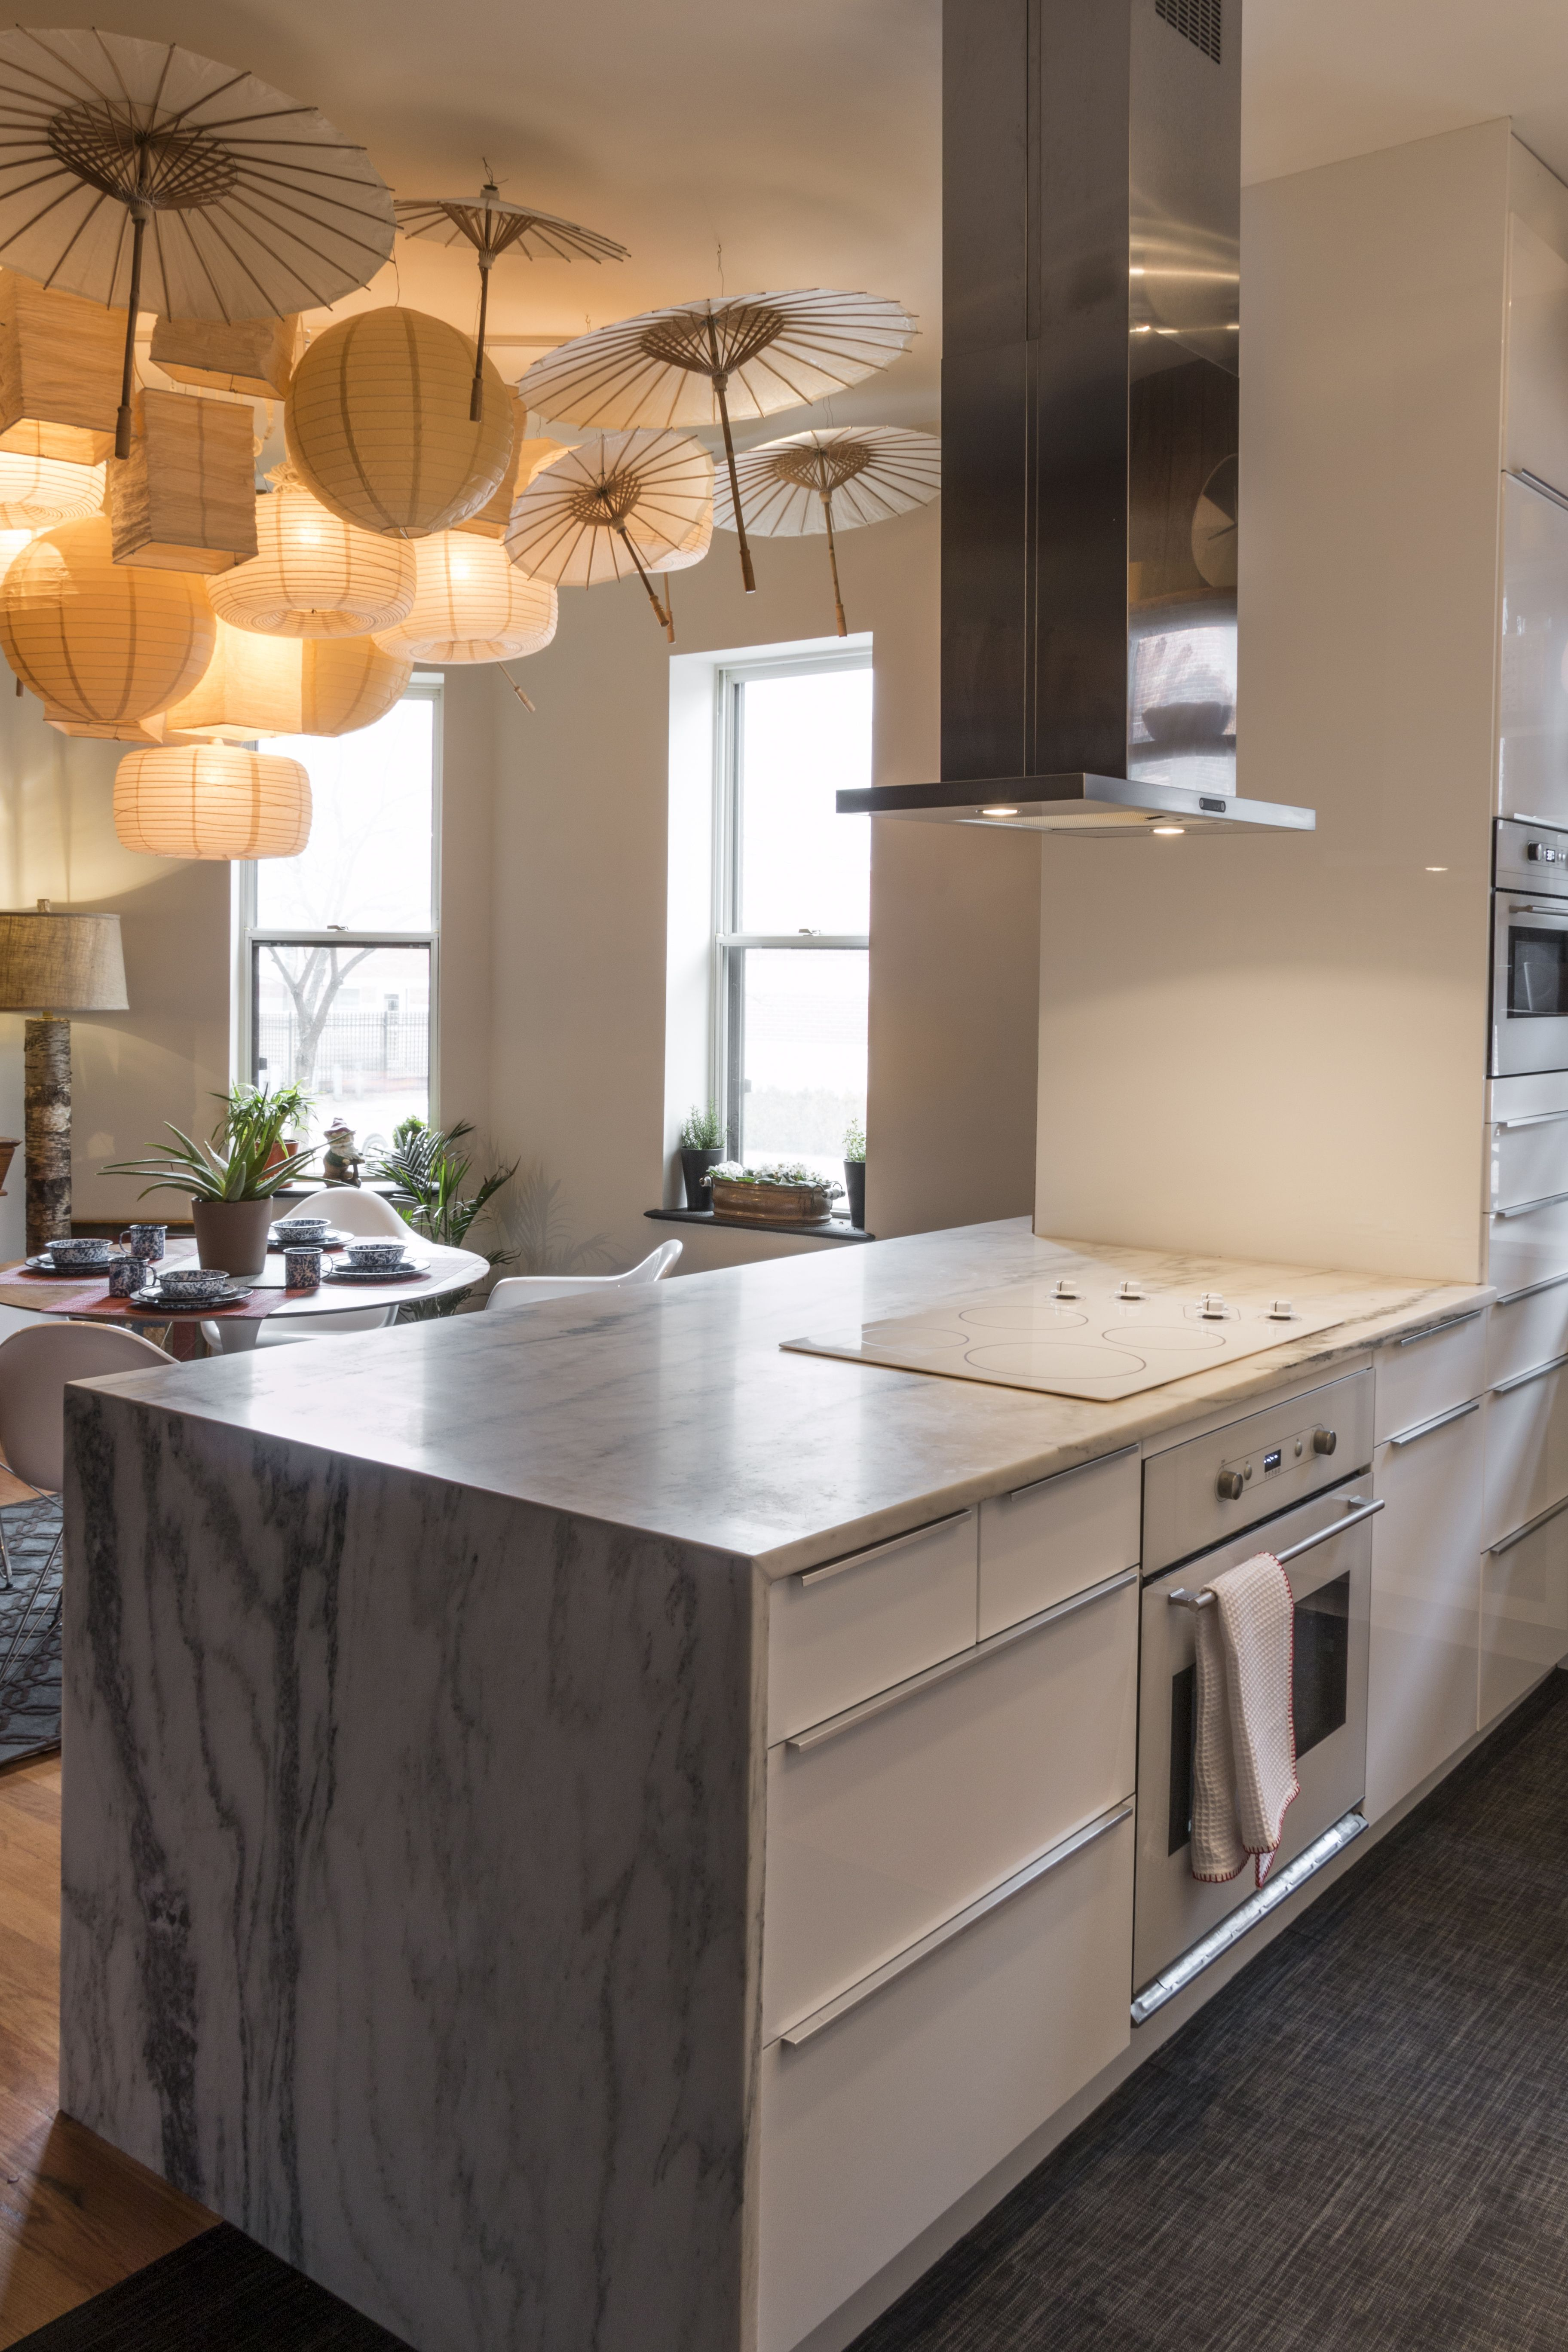 Schaller kitchen chilewich floor tiles danby vermont marble schaller kitchen chilewich floor tiles danby vermont marble waterfall countertop ikea cabinets dailygadgetfo Image collections